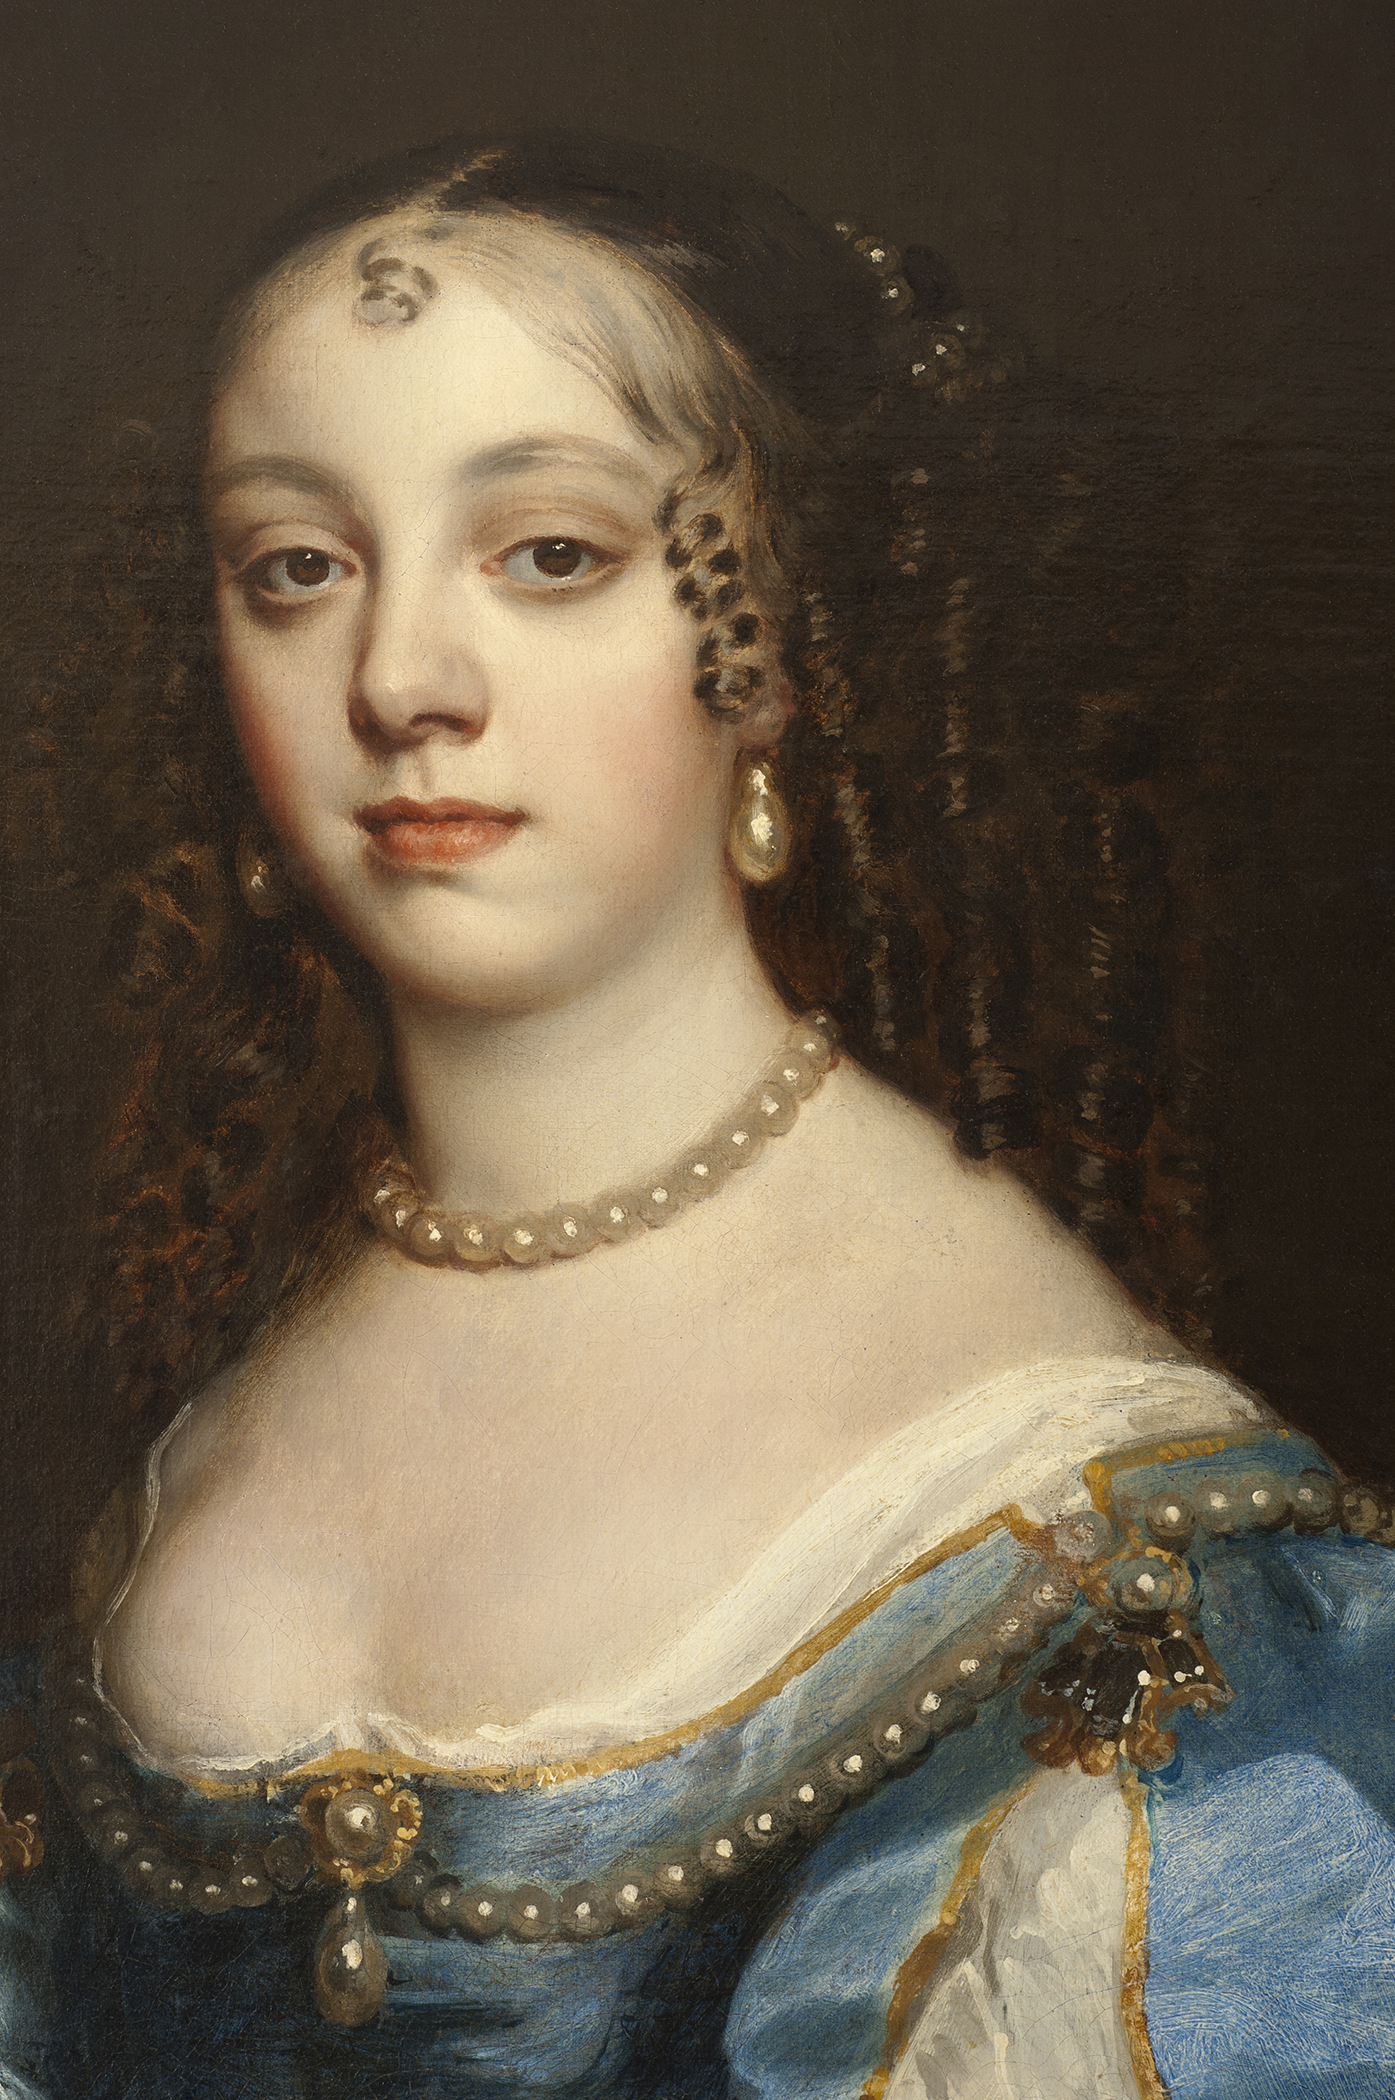 Portrait of Catherine of Braganza (1638-1705), Queen consort of England, Scotland and Ireland (1662-1685) | Portraits of Kings